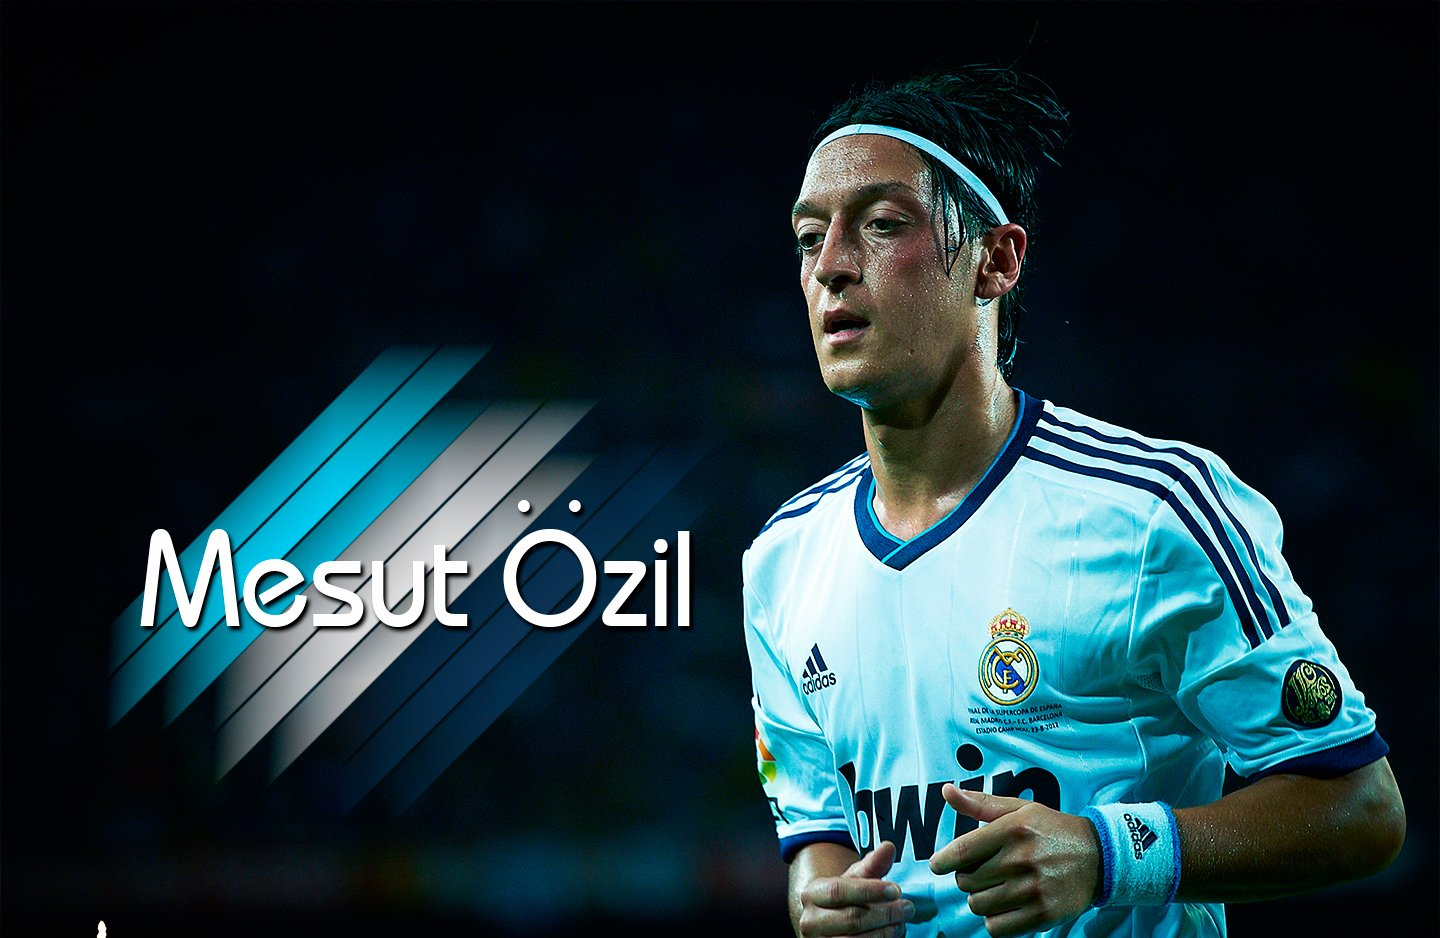 mesut ozil 2013 wallpapers hd